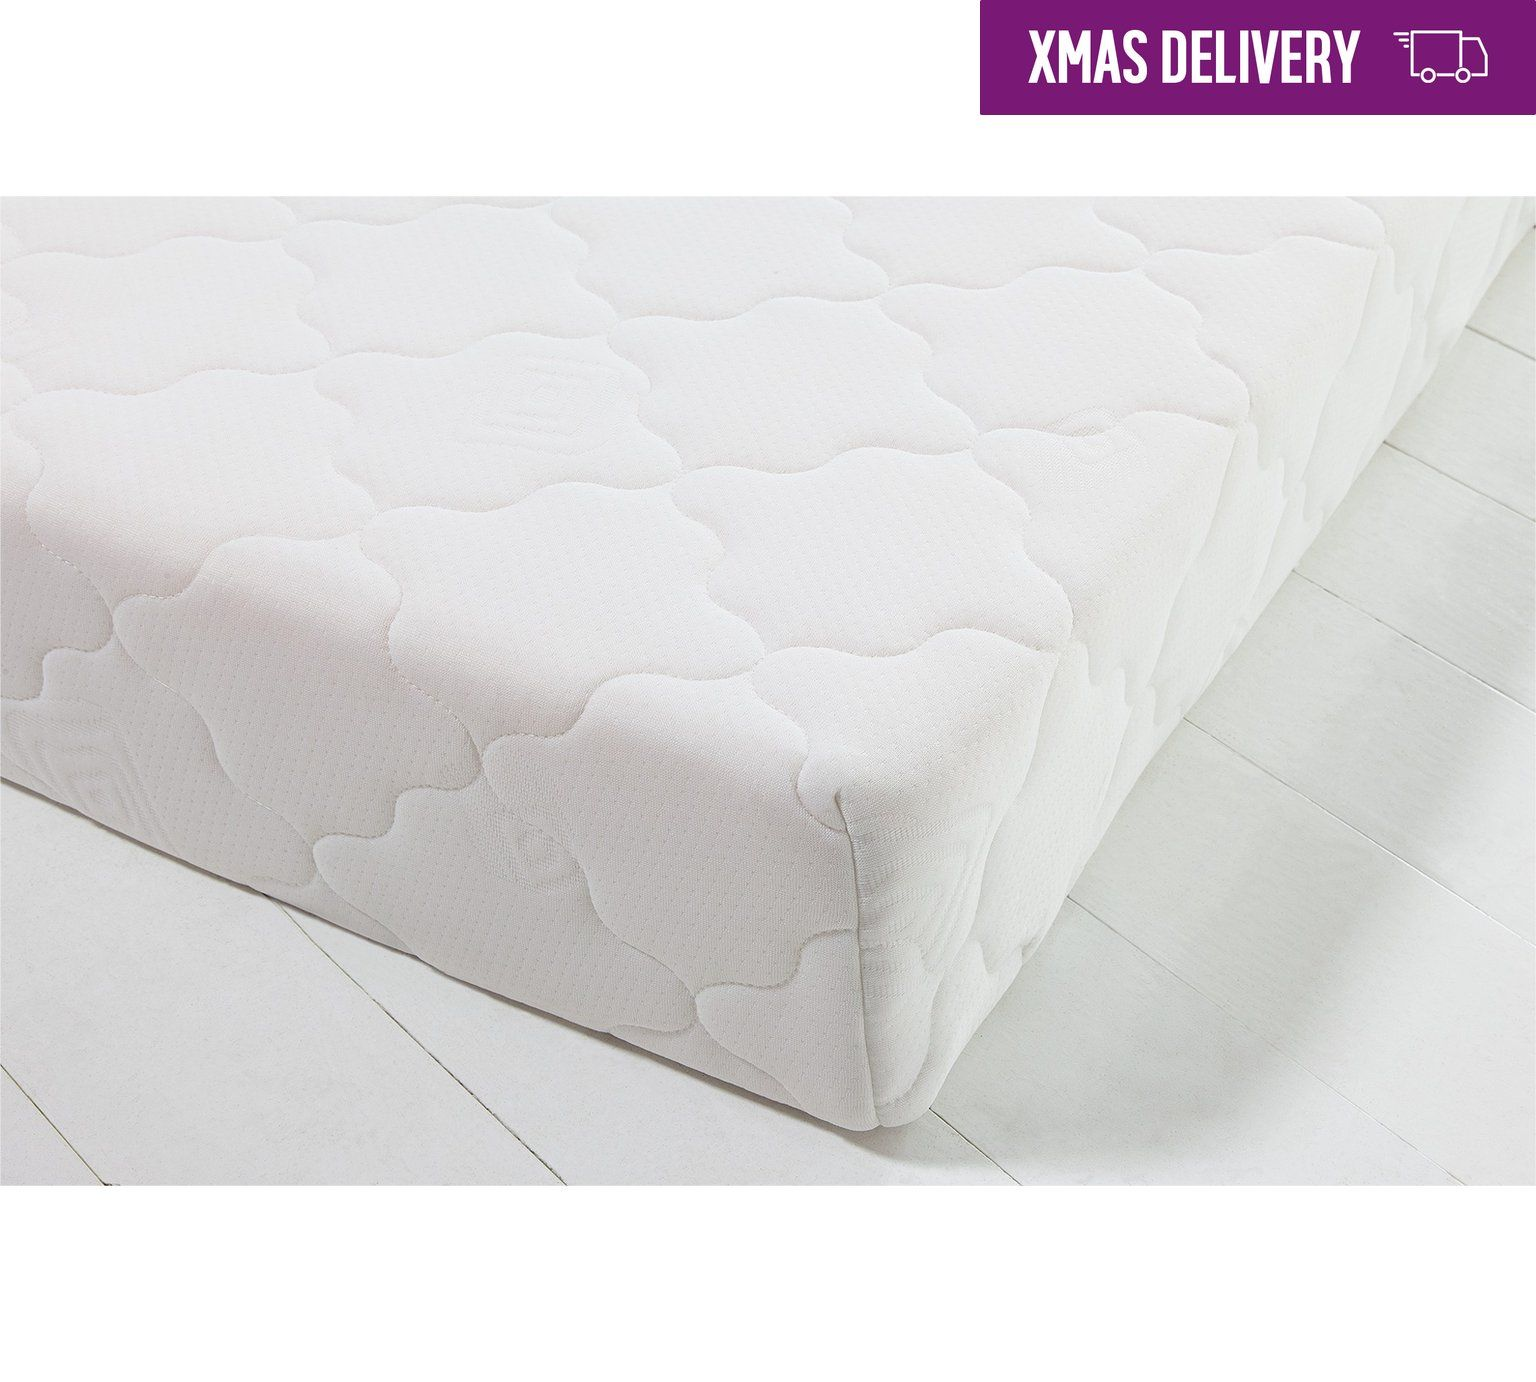 Rolled Single Mattress Buy I Sleep Collect Now Memory Foam Rolled Single Mattress At